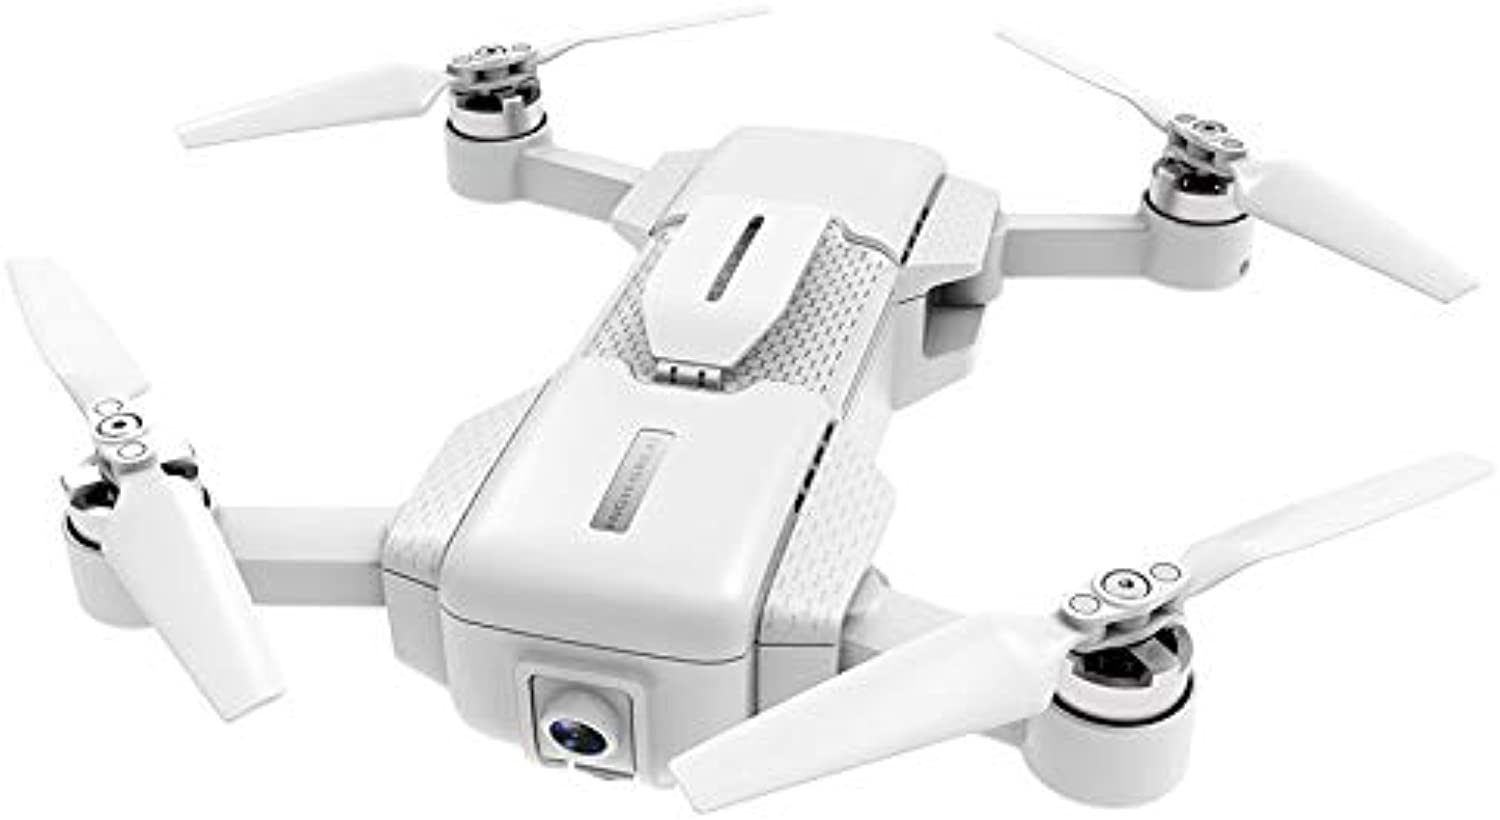 Aoile HighGreat Mark VIO Positioning 4K WiFi FPV 13MP Camera Foldable RC Drone Quadcopter White